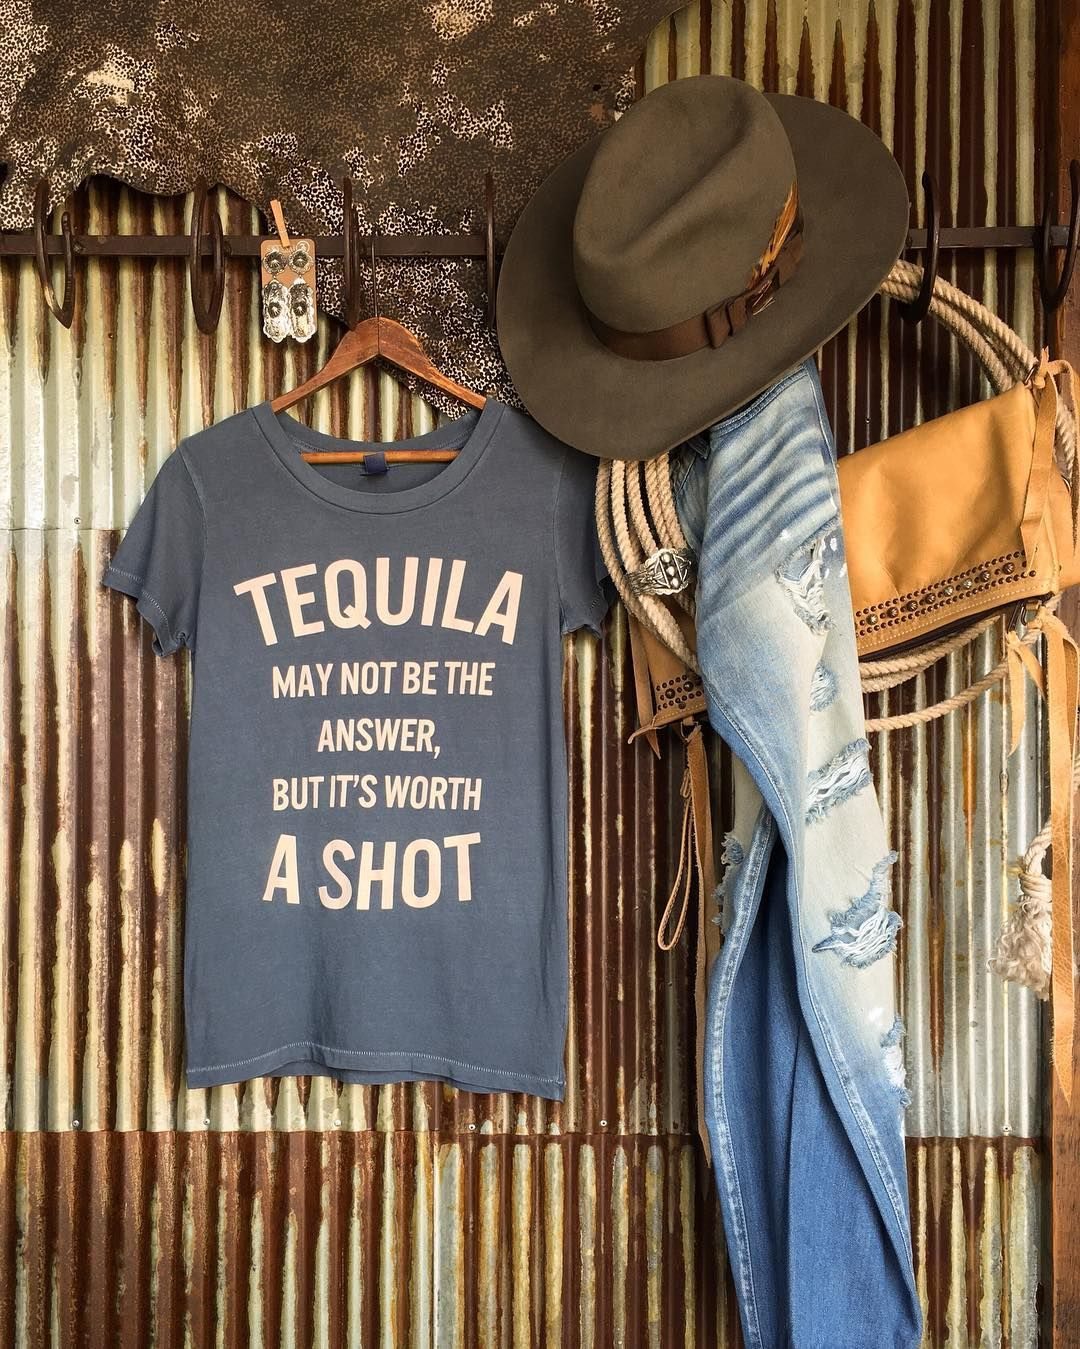 Touché  cheers  tequilatuesday  fave  newarrival  graphictee  savannah7s 9ce76ac13ba1